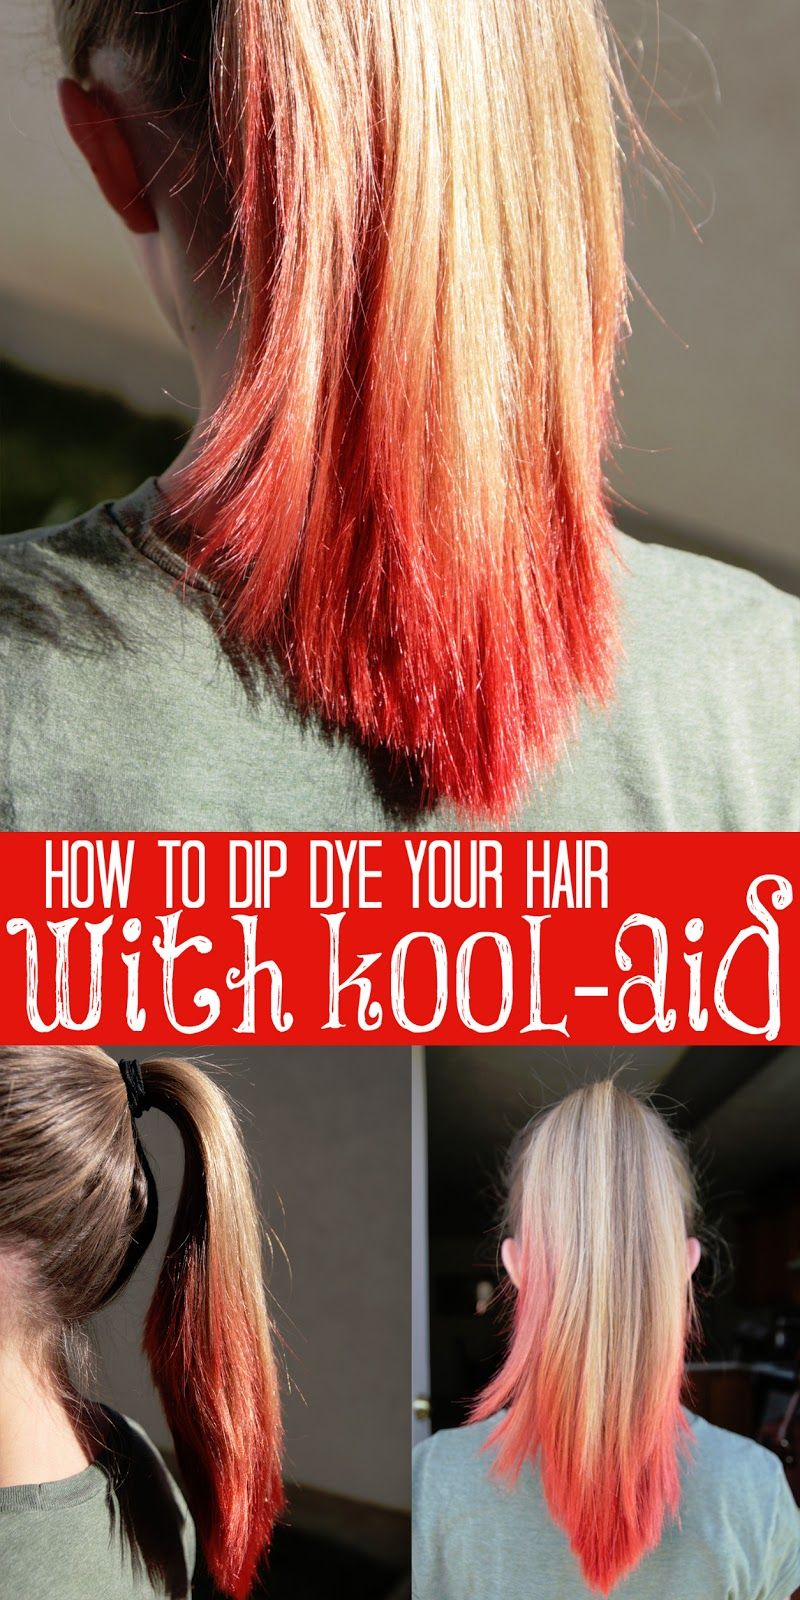 How To Dip Dye Your Hair With Kool Aid Tips From A Typical Mom Kool Aid Hair Dye Dip Dye Hair Kool Aid Hair